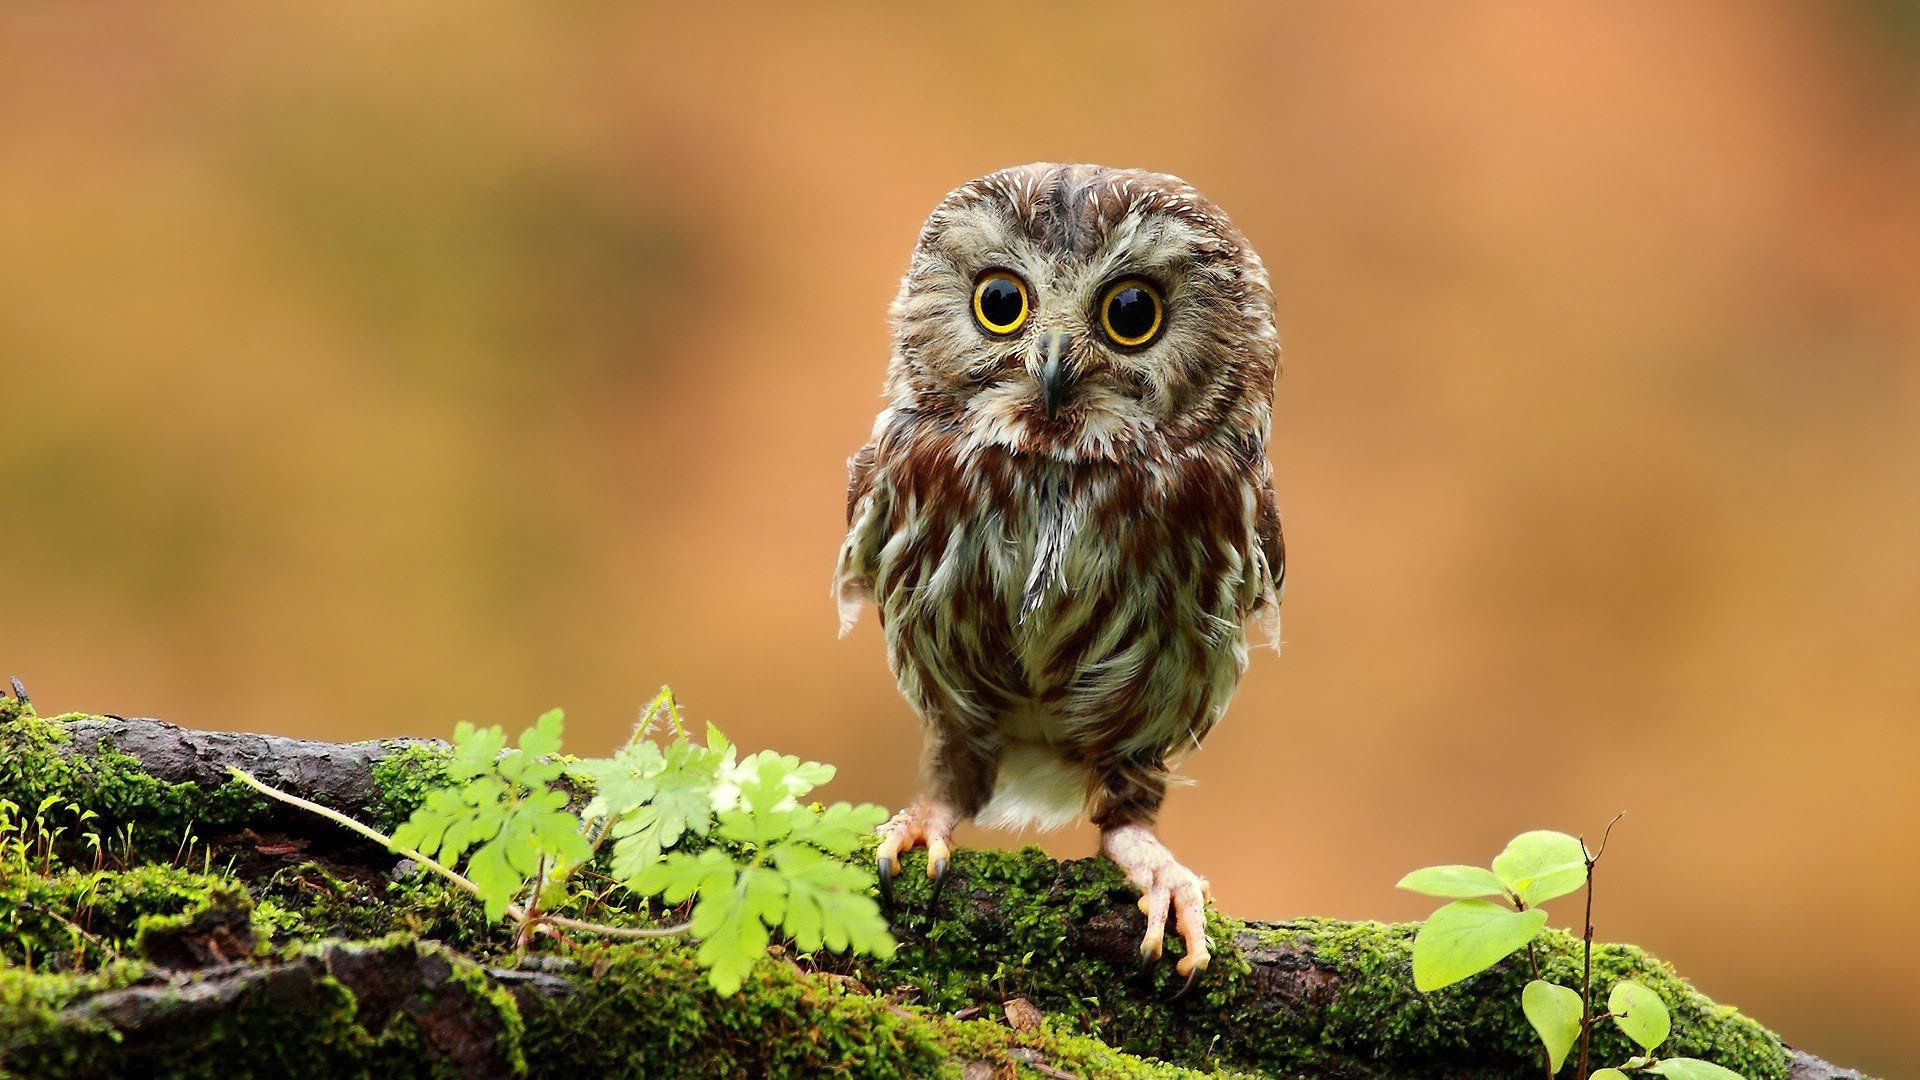 baby owl photos, videos and facts